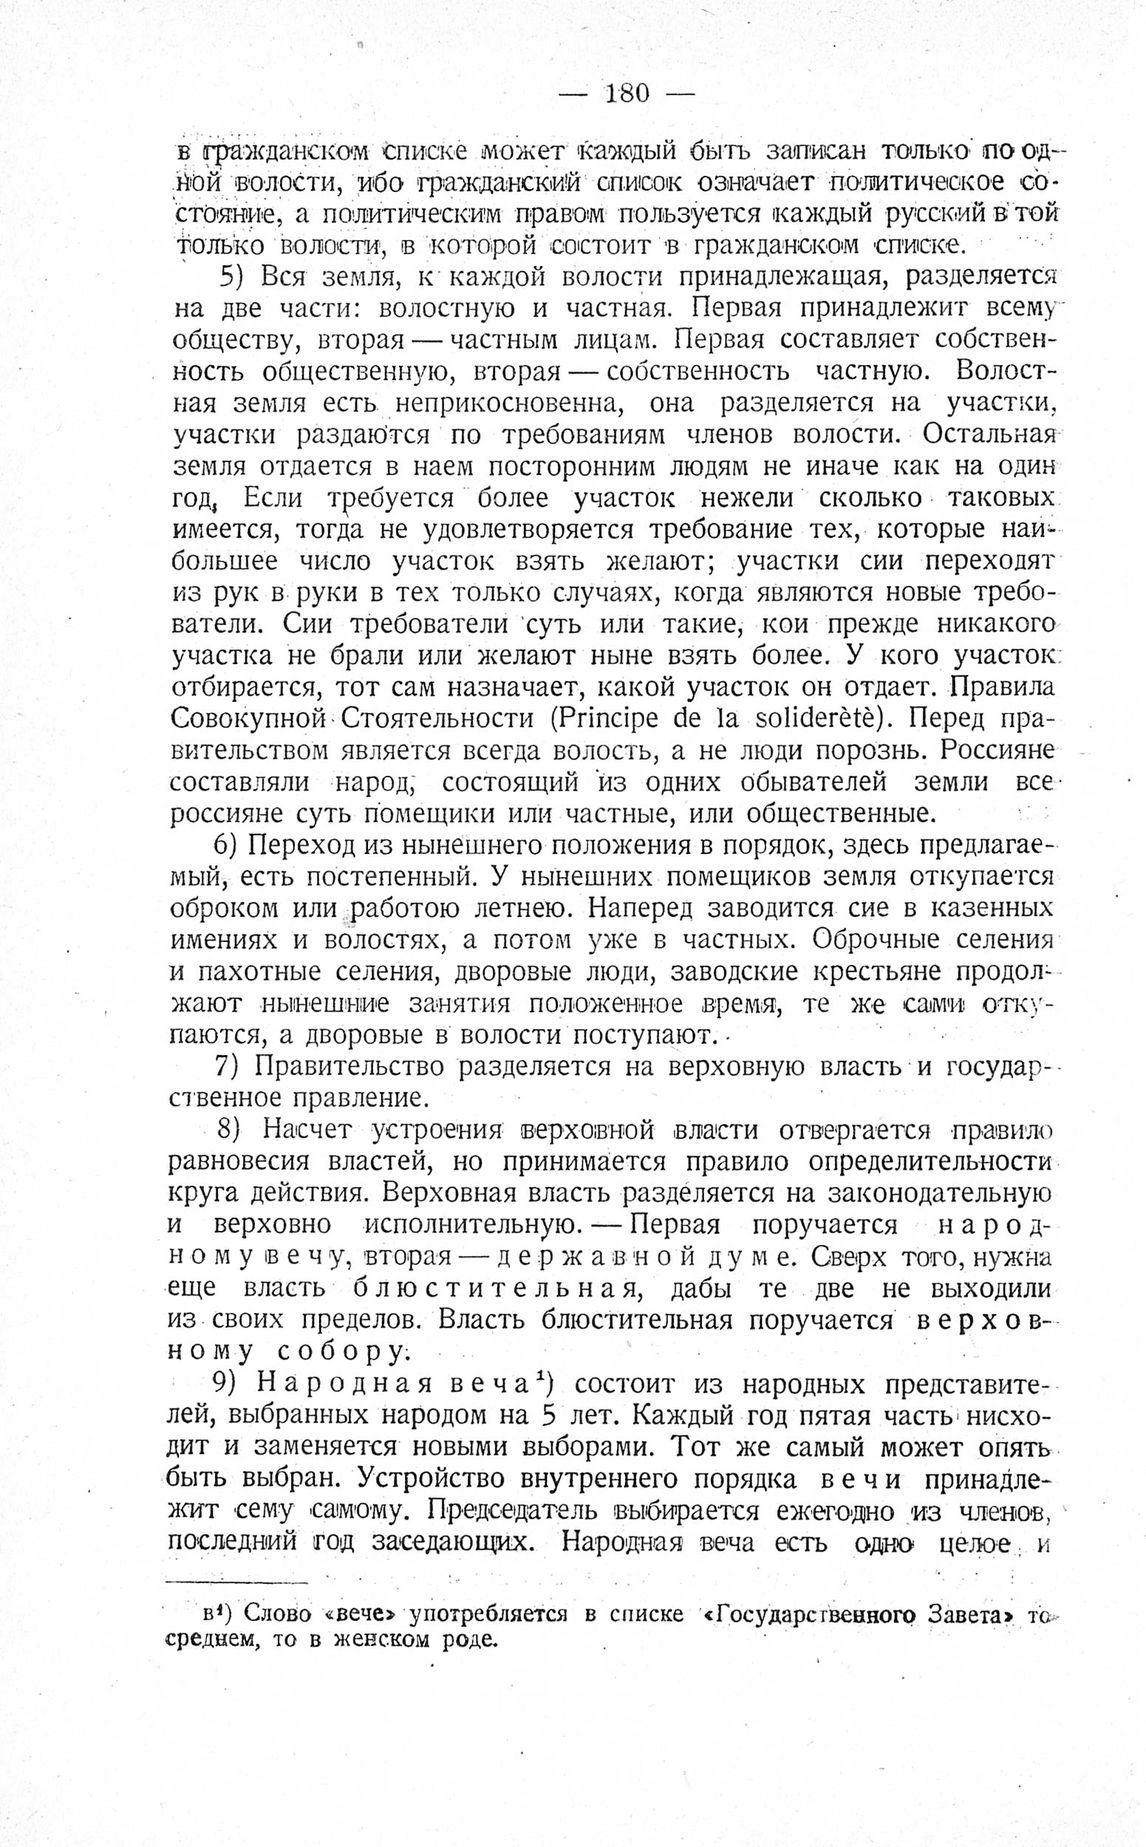 http://elib.shpl.ru/pages/625763/zooms/7